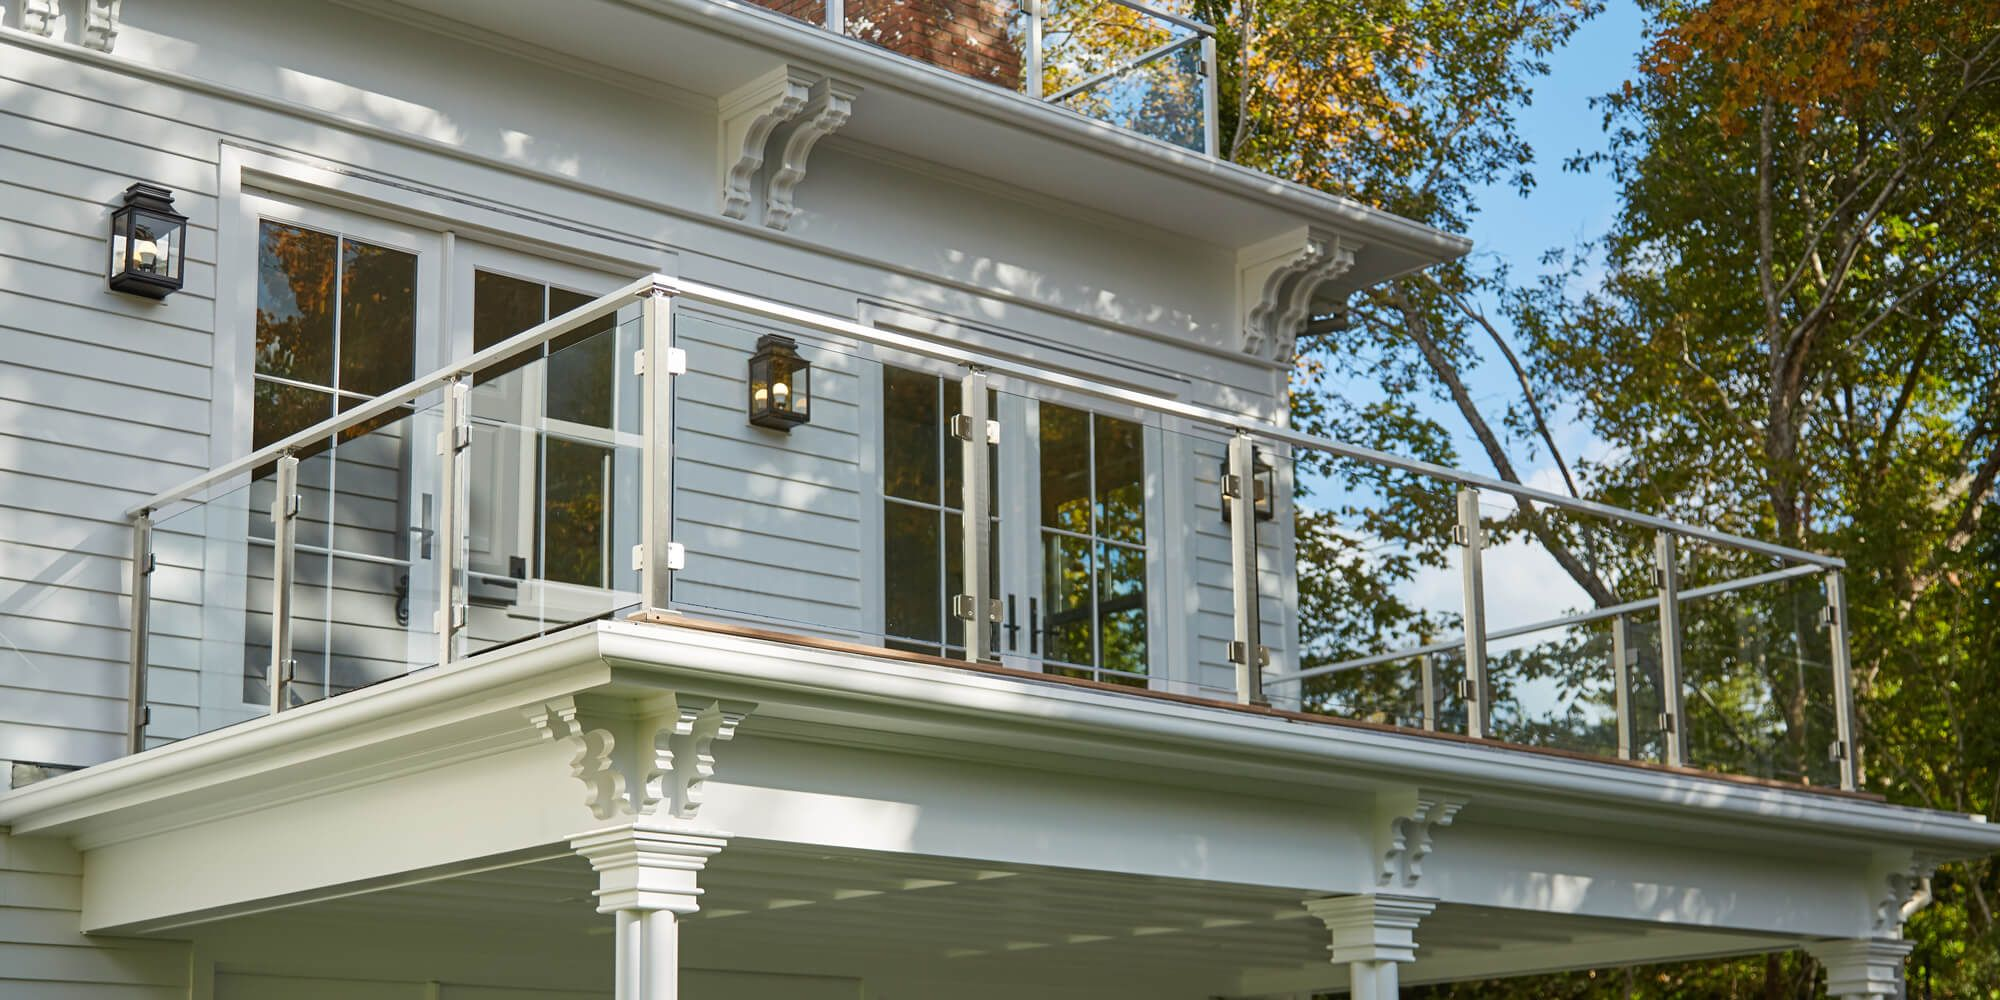 residential exterior glass railing systems - Google Search ...